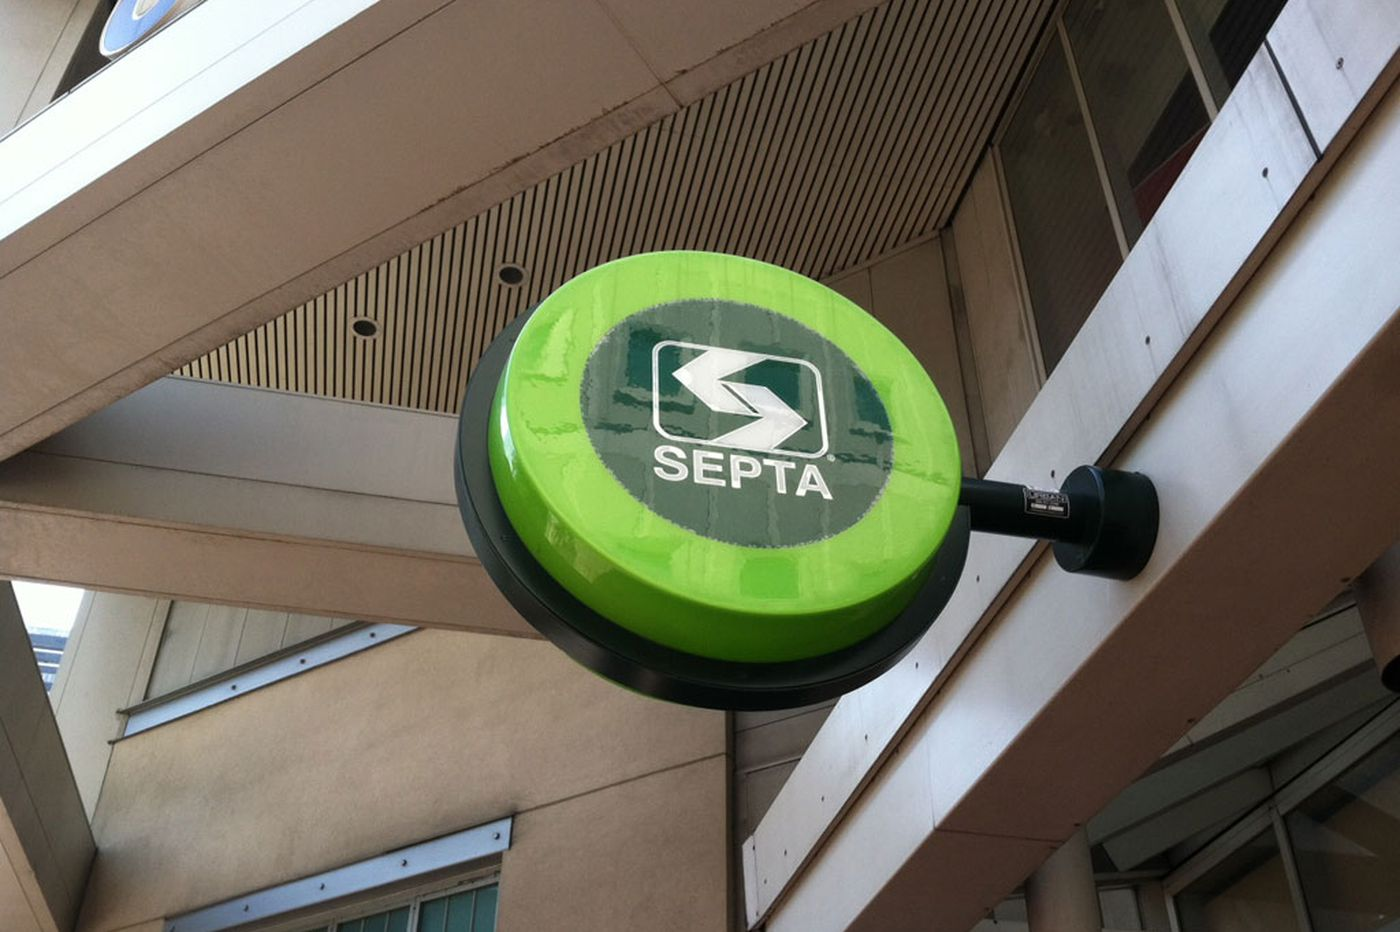 Police: Grenade found at SEPTA station nothing to worry about